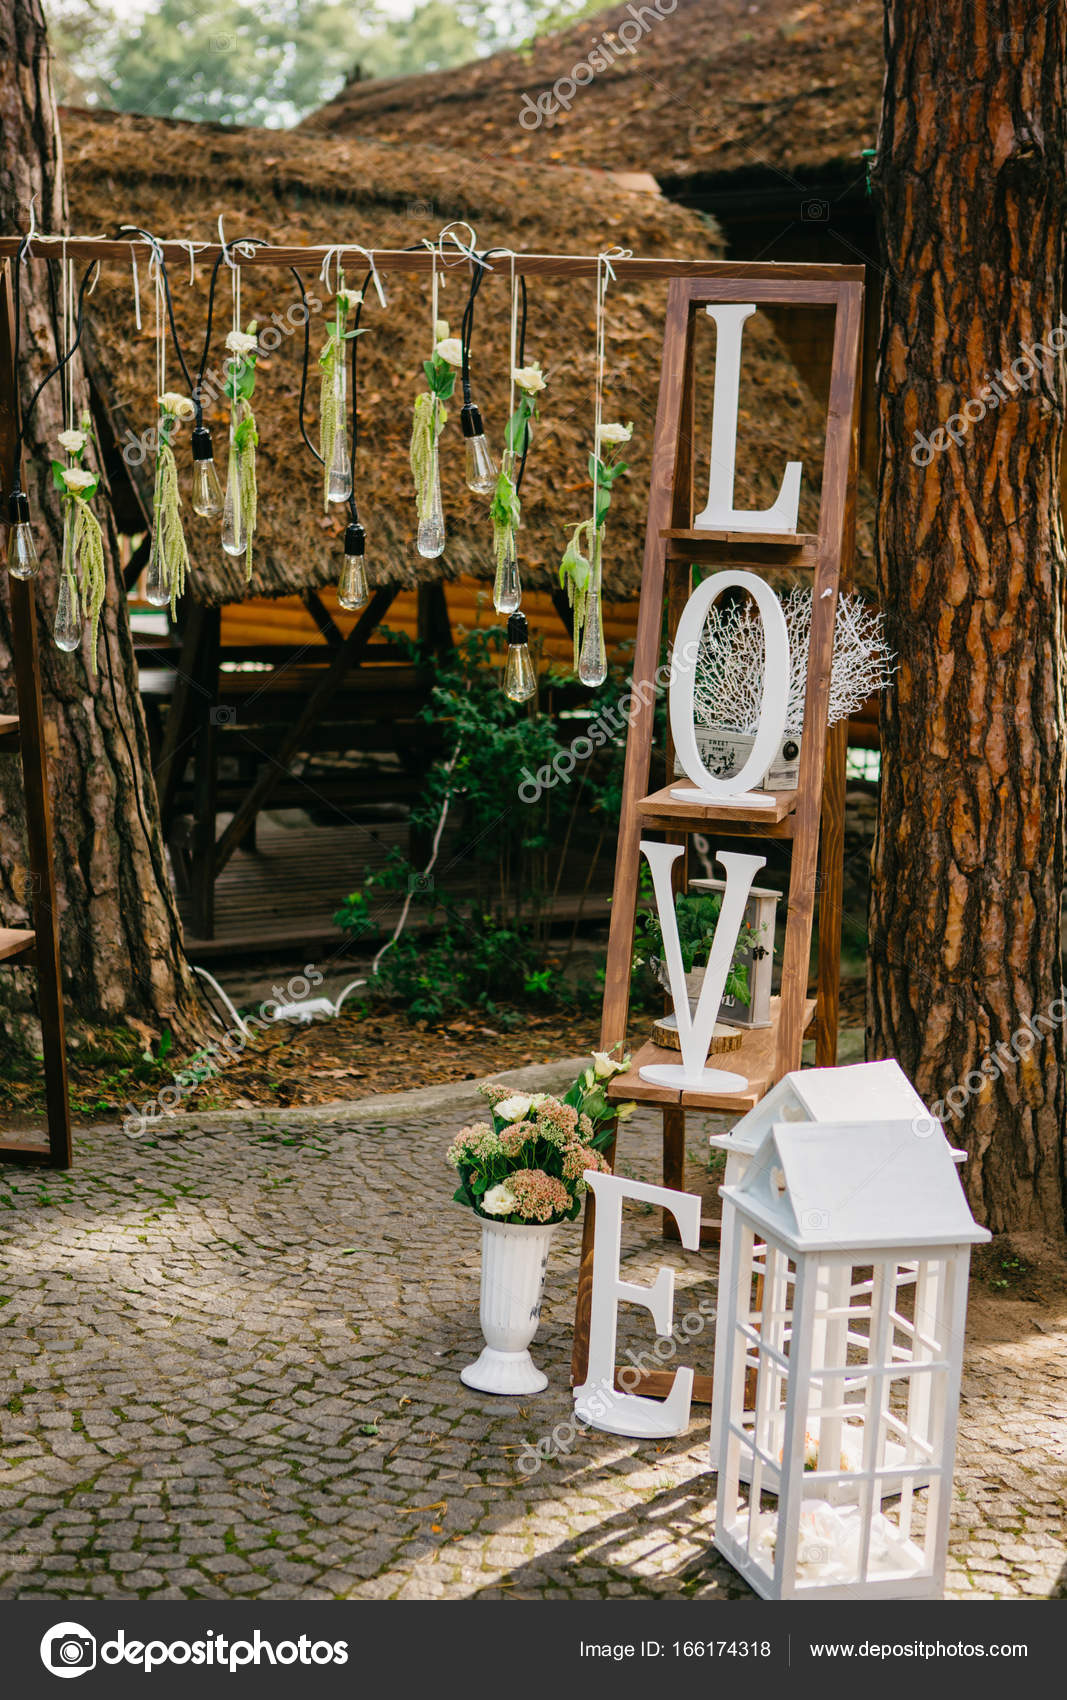 Wedding arch and decorations for rustic wedding ceremony stock wedding arch and decorations for rustic wedding ceremony stock photo junglespirit Image collections